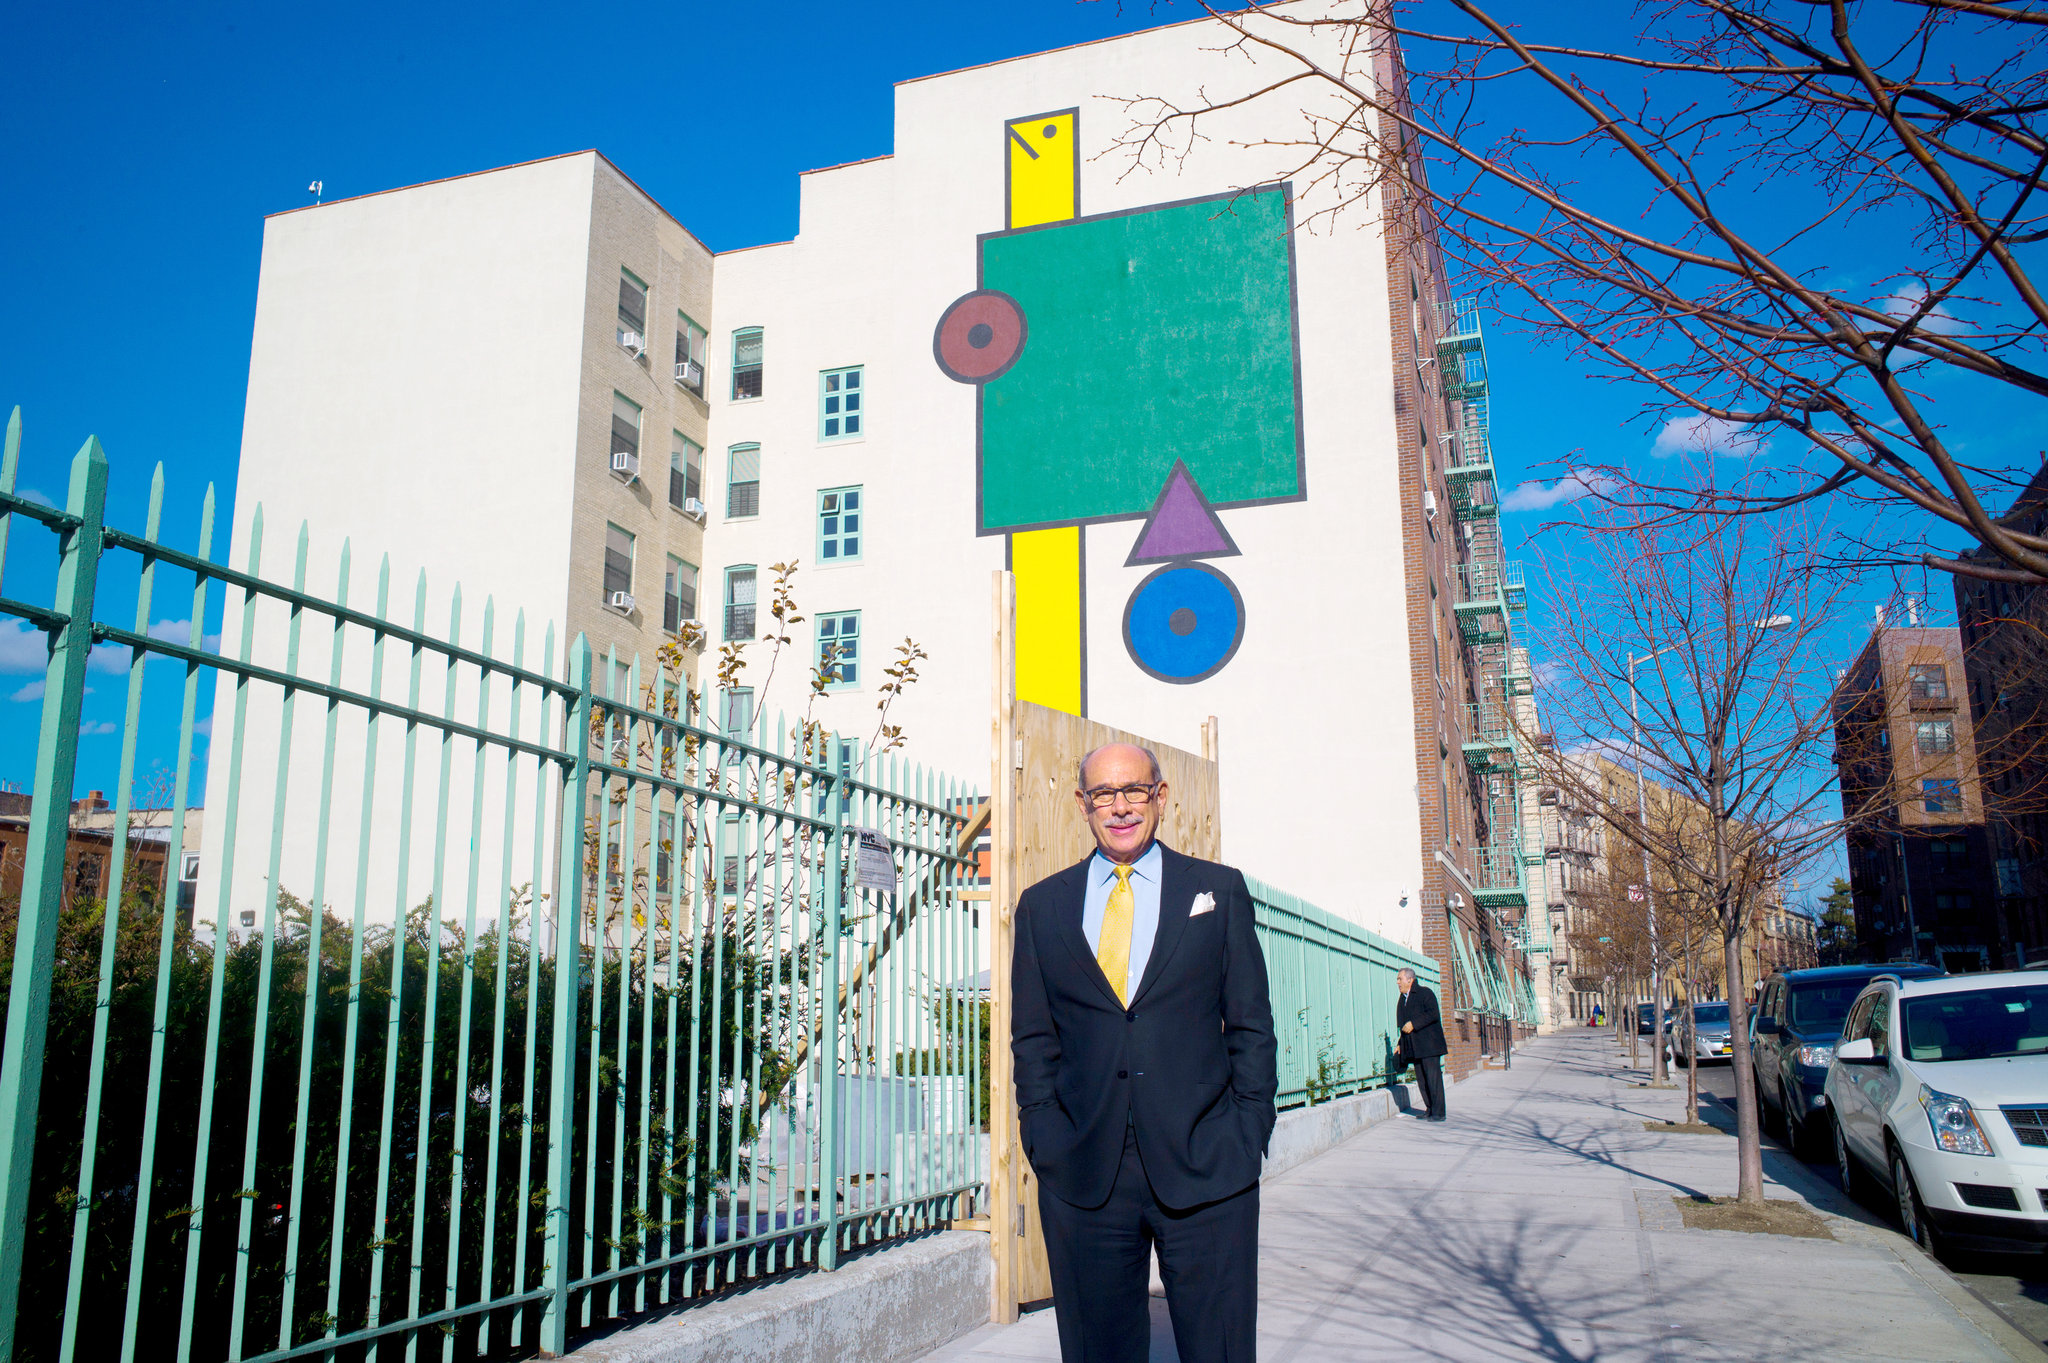 """""""CATCHING UP Peter Magistro is the founder of a company that owns and manages affordable apartment buildings in the Bronx. He said that with time, misperceptions of the Bronx from the '60s and '70s have begun to dissipate. Credit Ozier Muhammad/The New York Times"""""""